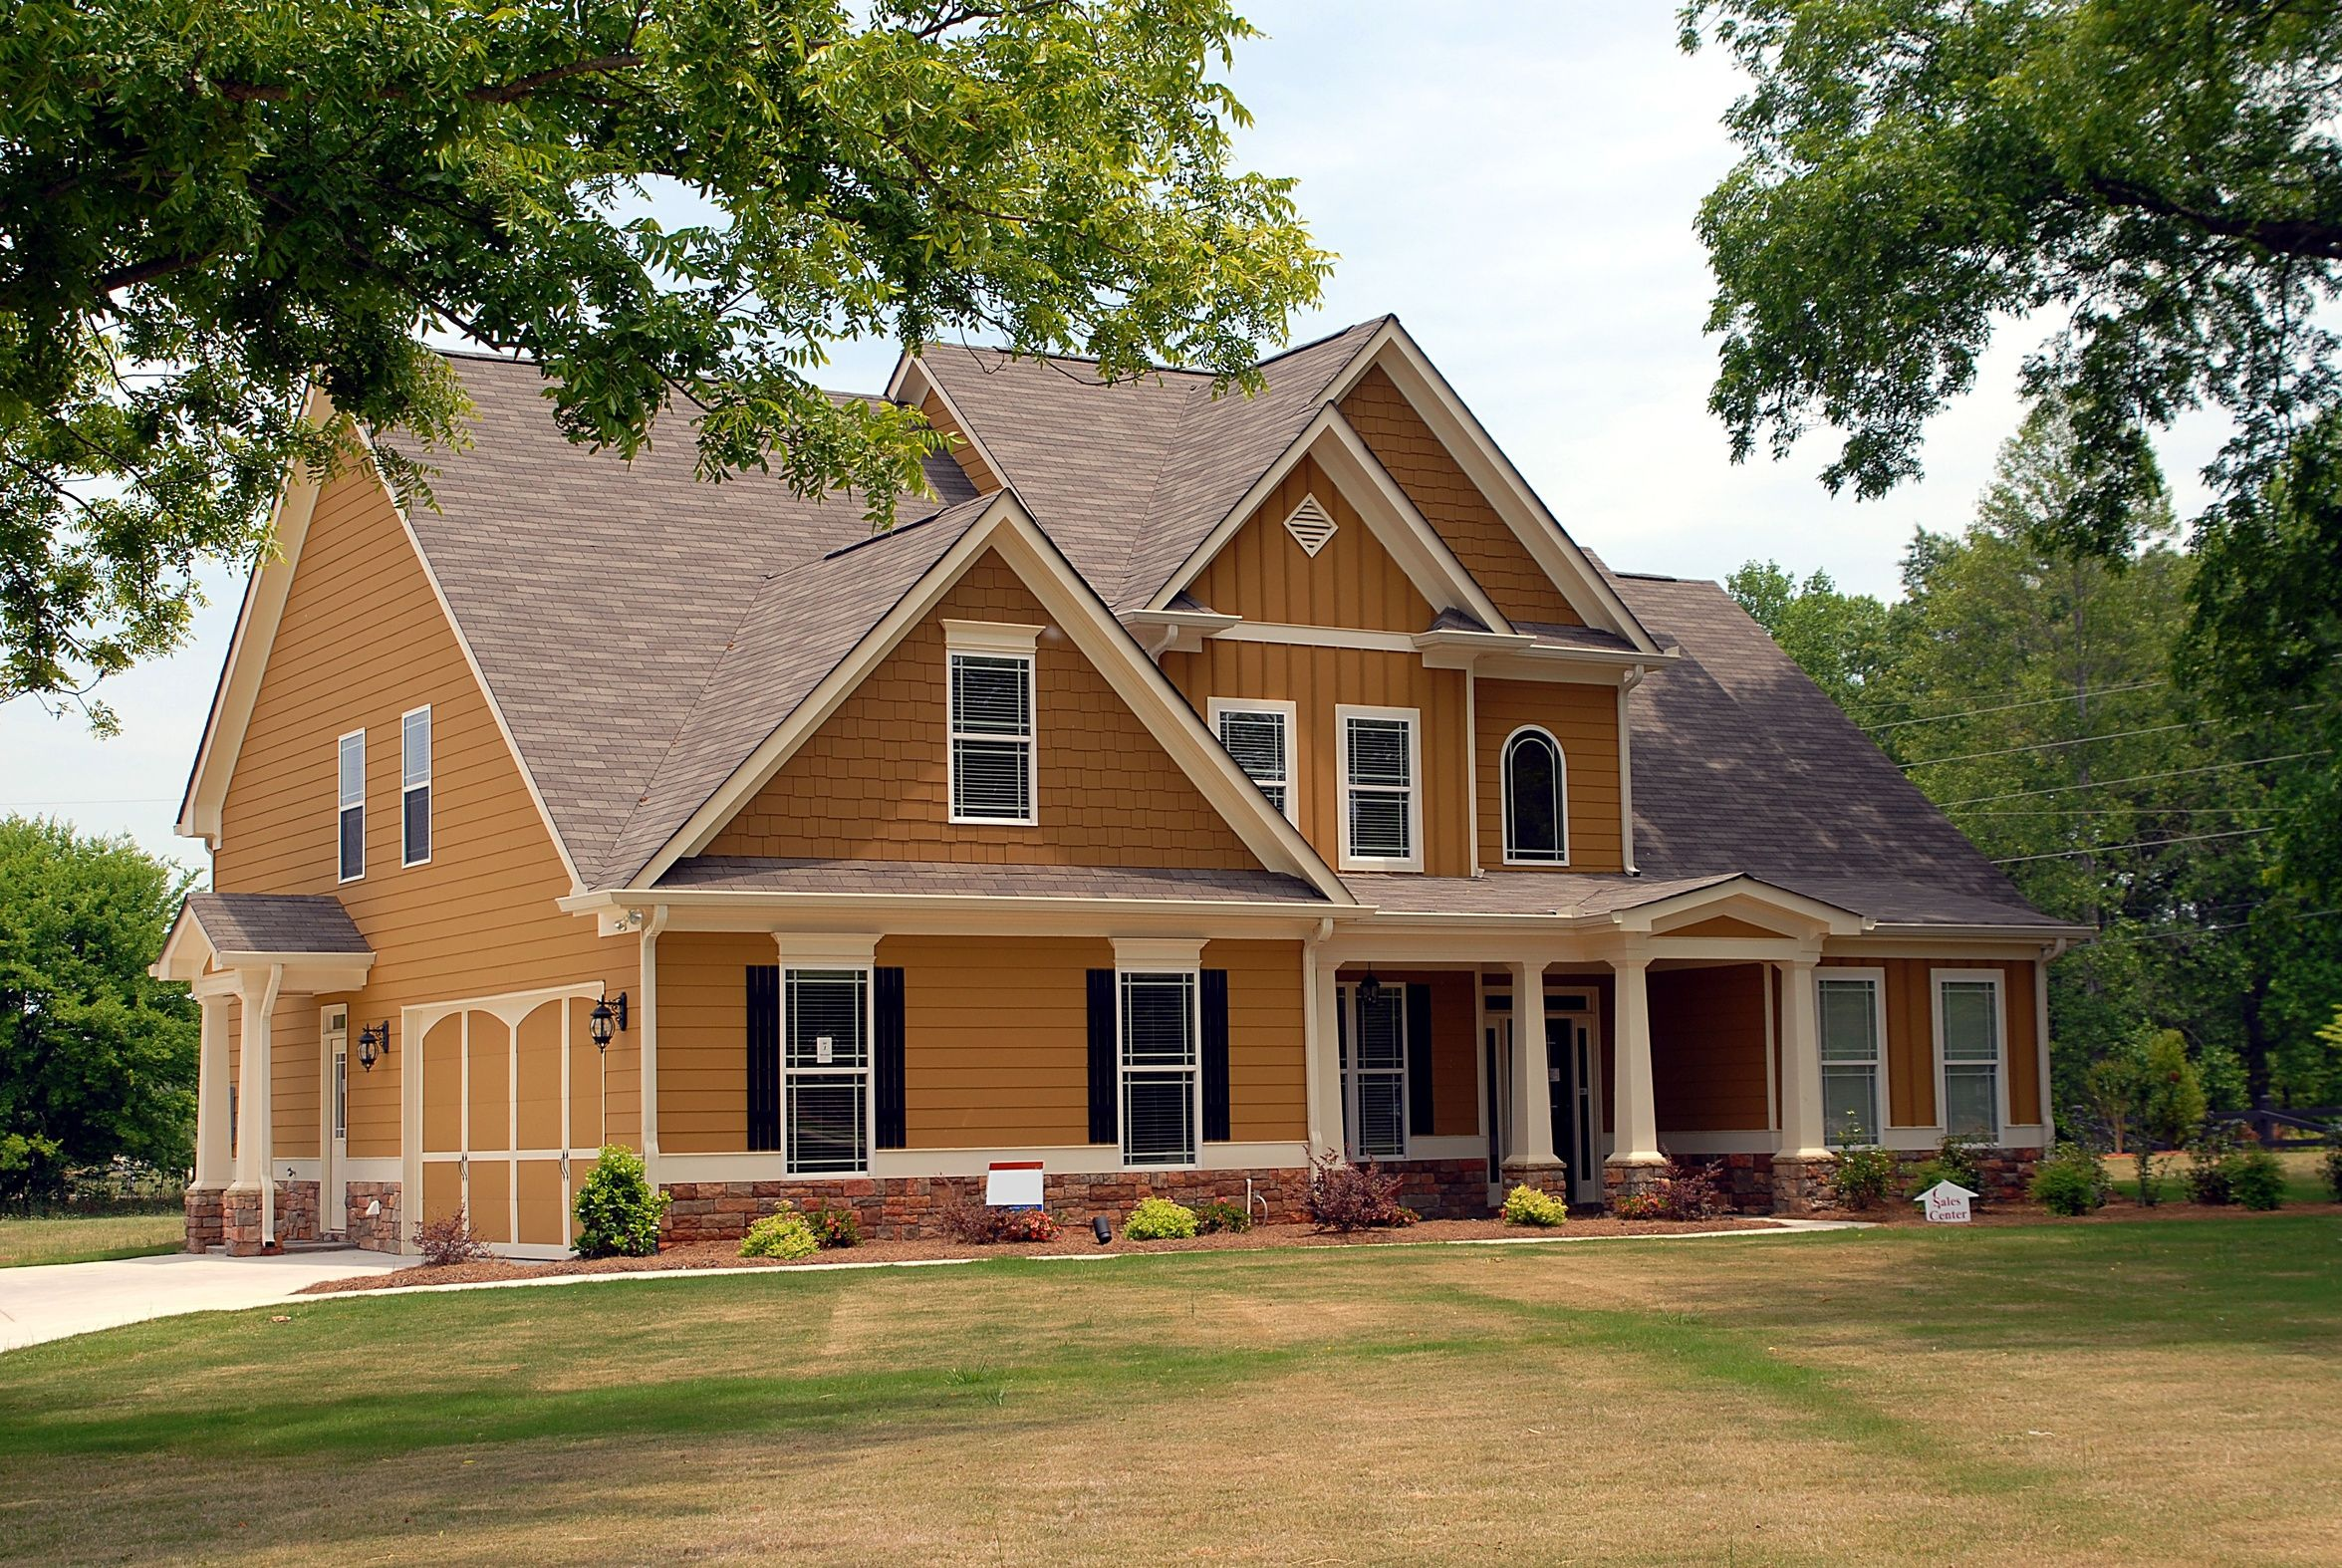 Brown exterior house paint colors looking for professional house painting in stamford ct - Exterior house colors brown ...